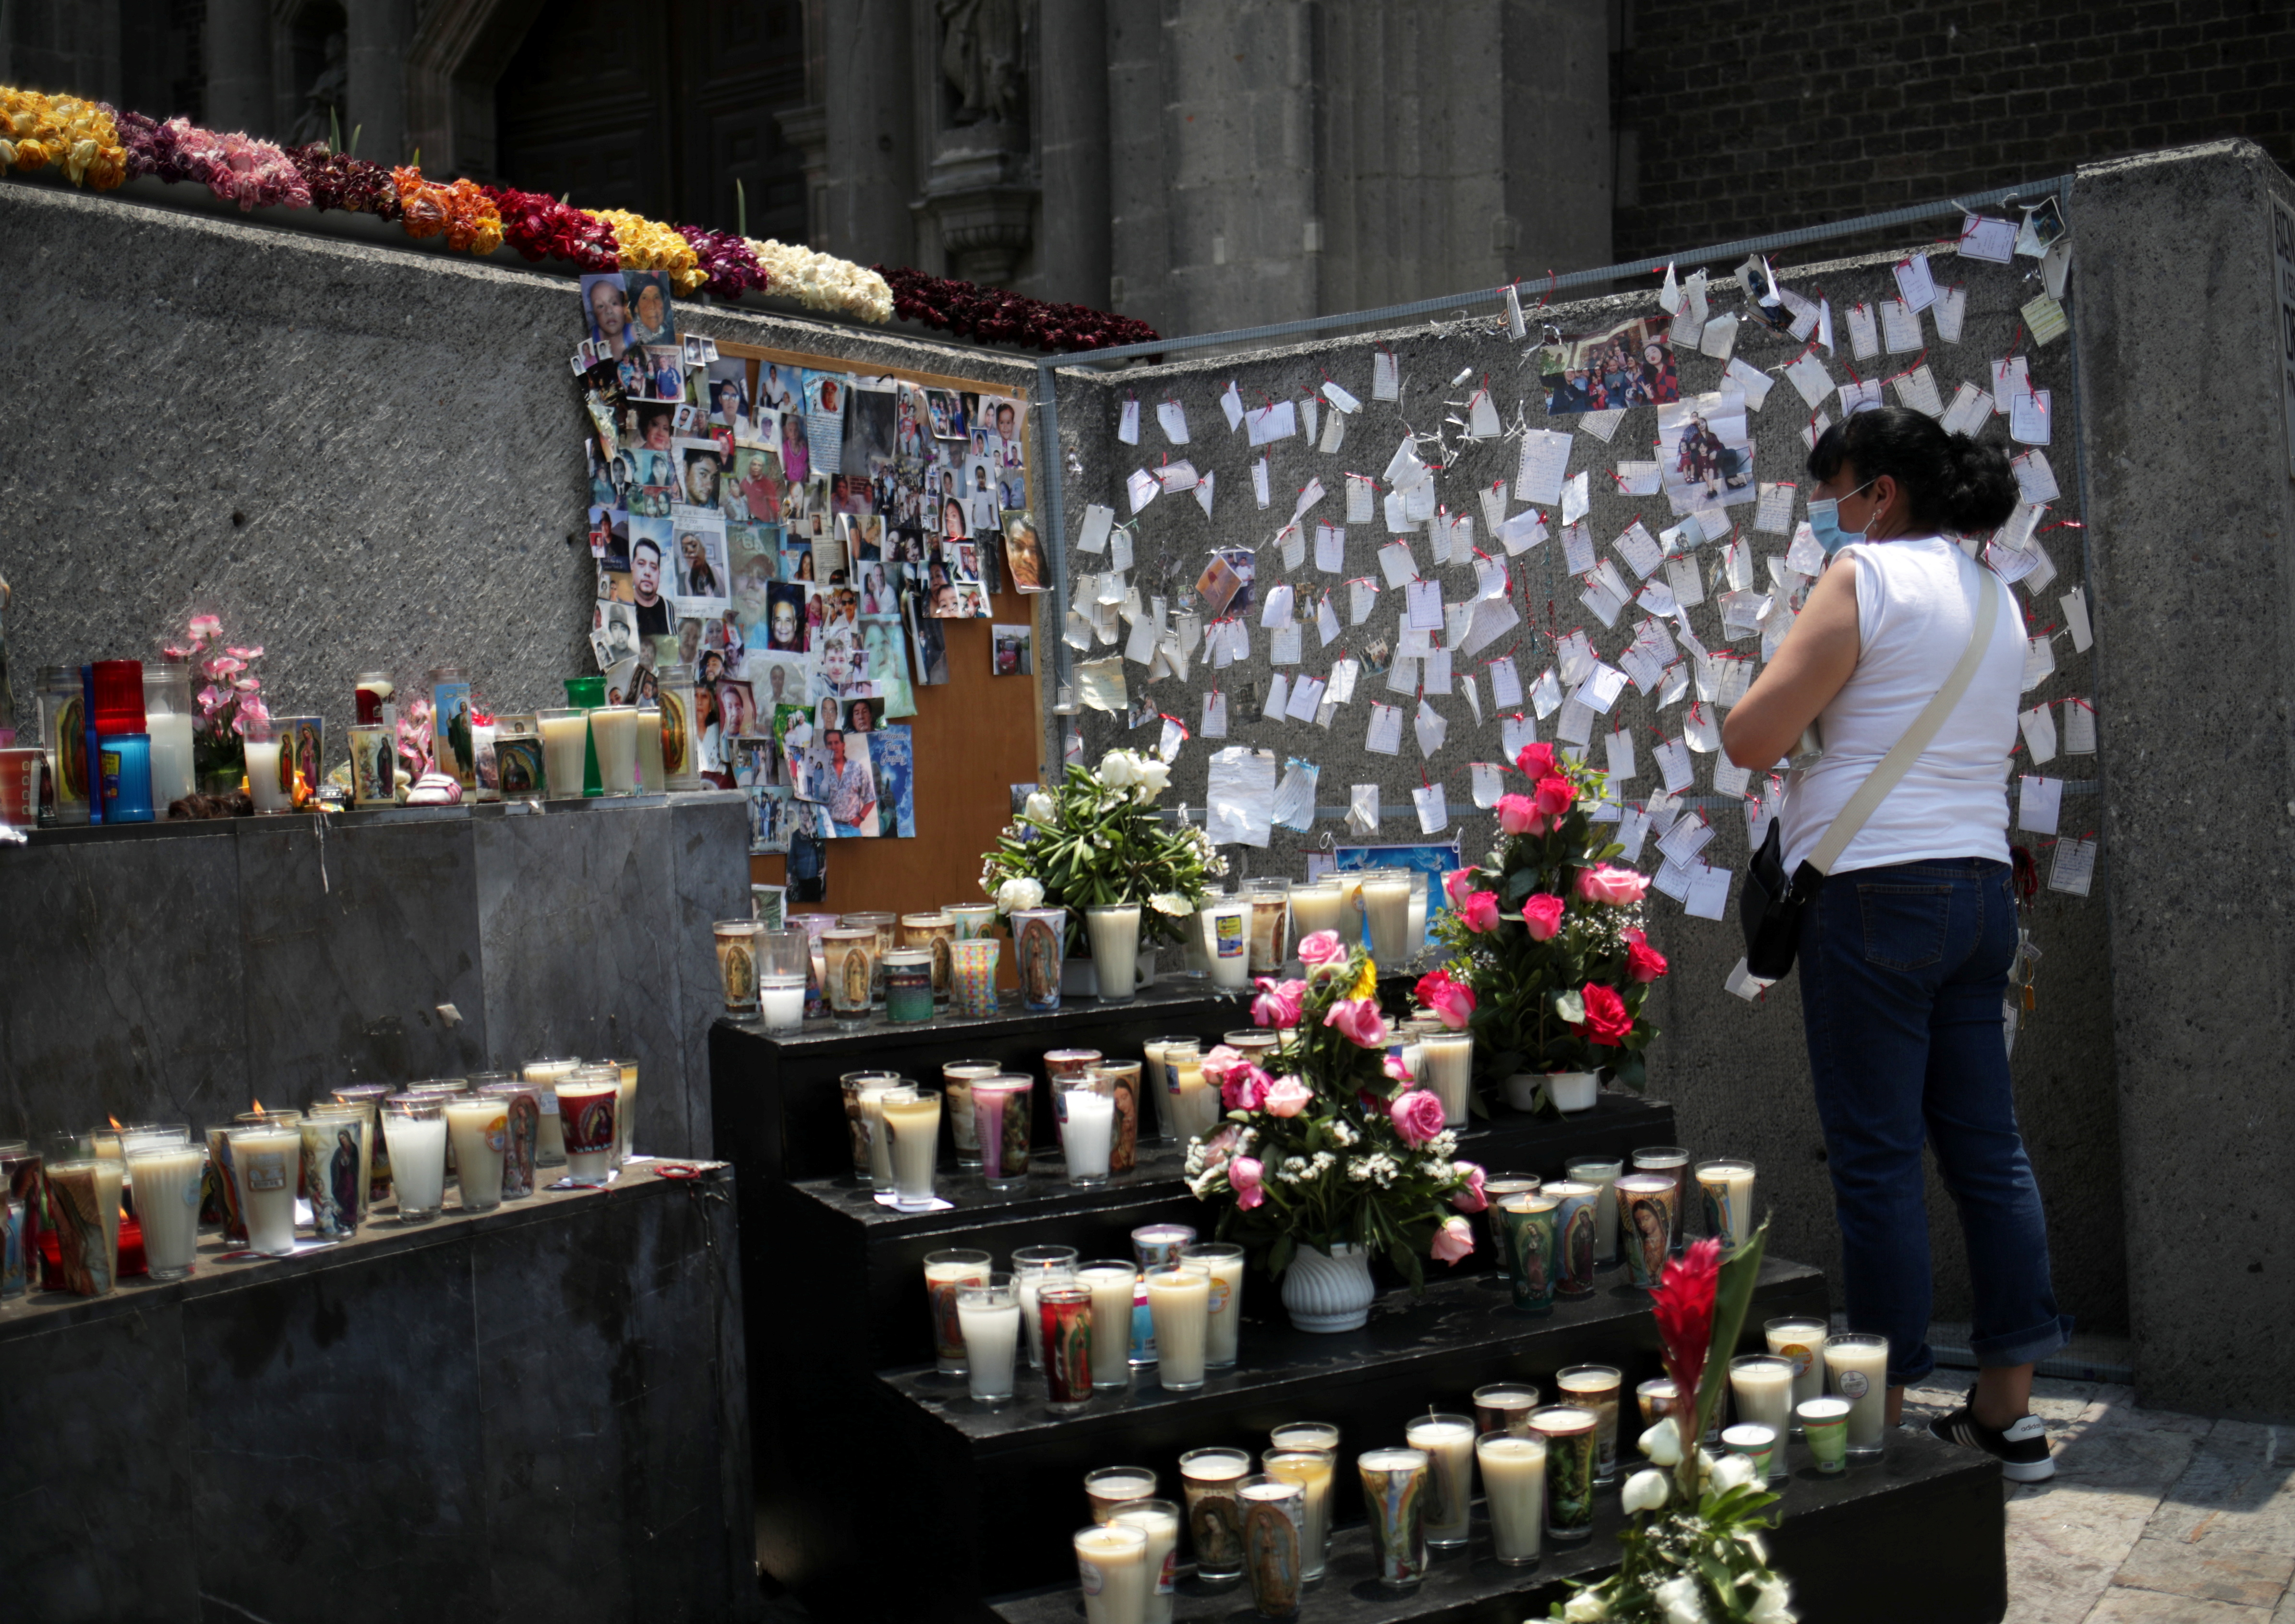 A woman visits a memorial dedicated to COVID-19 victims and other deaths in Mexico City, Mexico, April 25, 2021. Hundreds of candles, photographs, flowers and papers with messages have been placed in an area of the Basilica of Guadalupe as the outbreak continues. REUTERS/Henry Romero